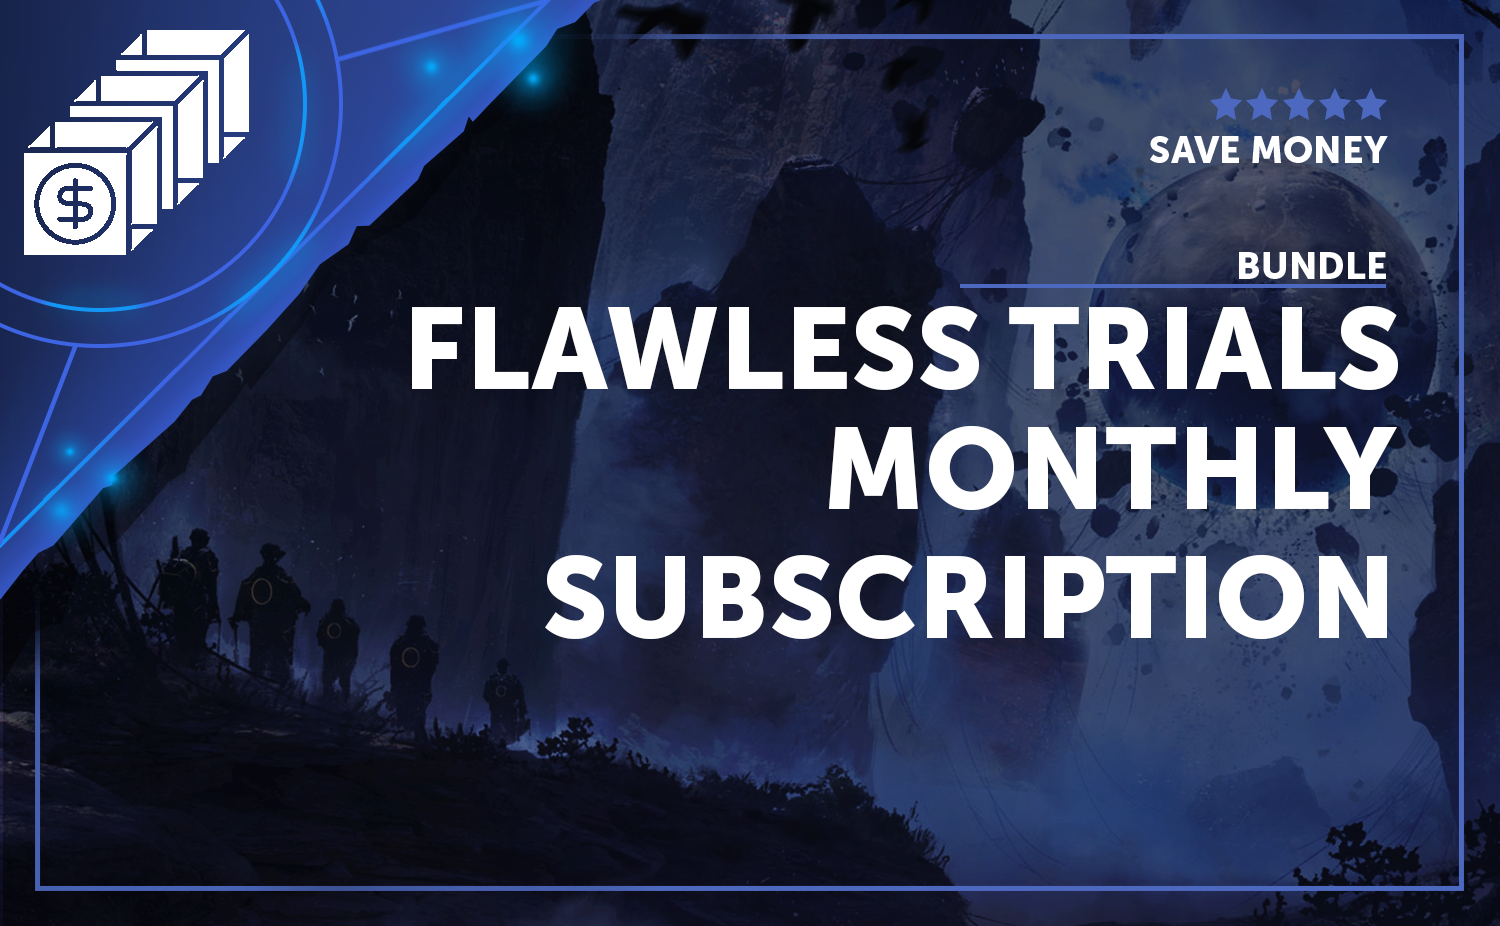 Flawless Monthly Subscription (15% Off)